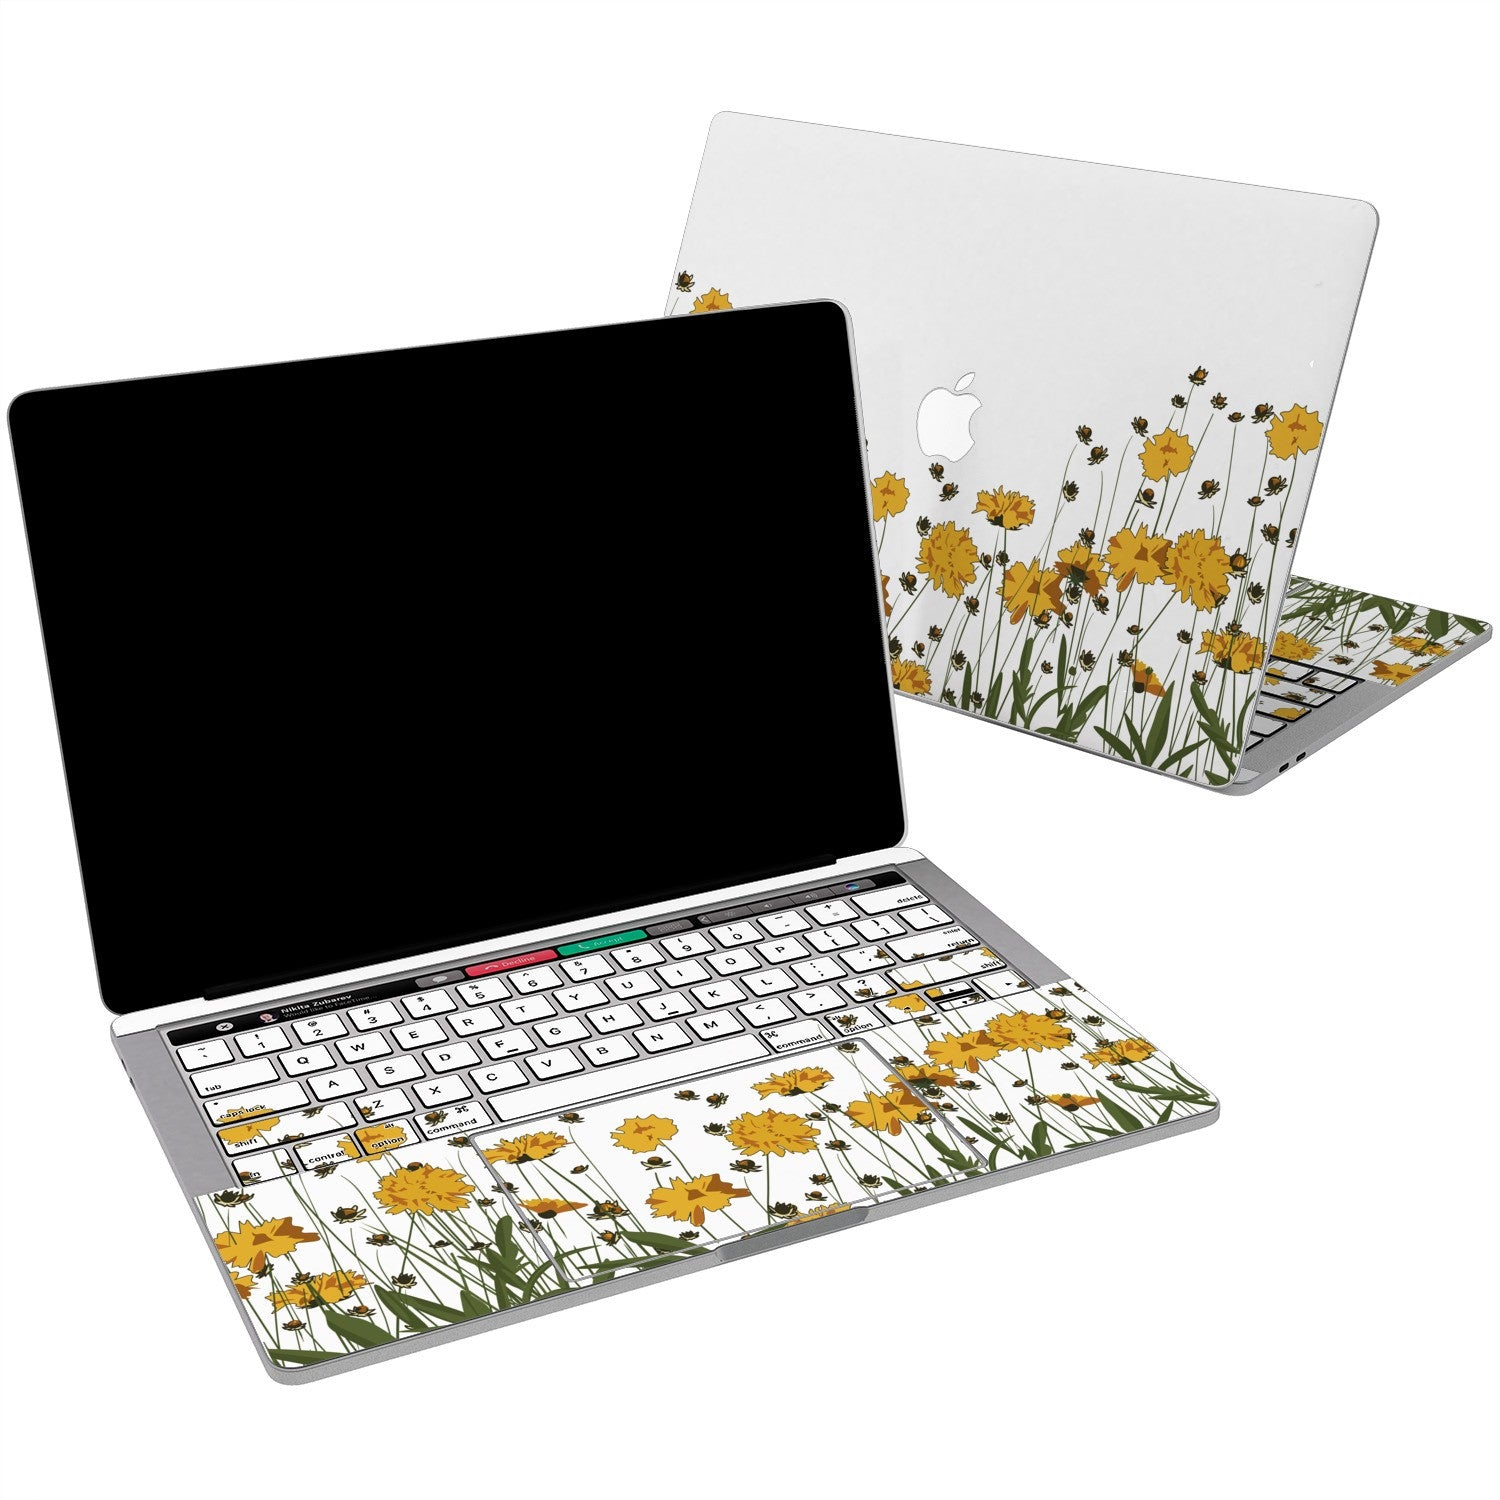 Lex Altern Vinyl MacBook Skin Yellow Flowers for your Laptop Apple Macbook.